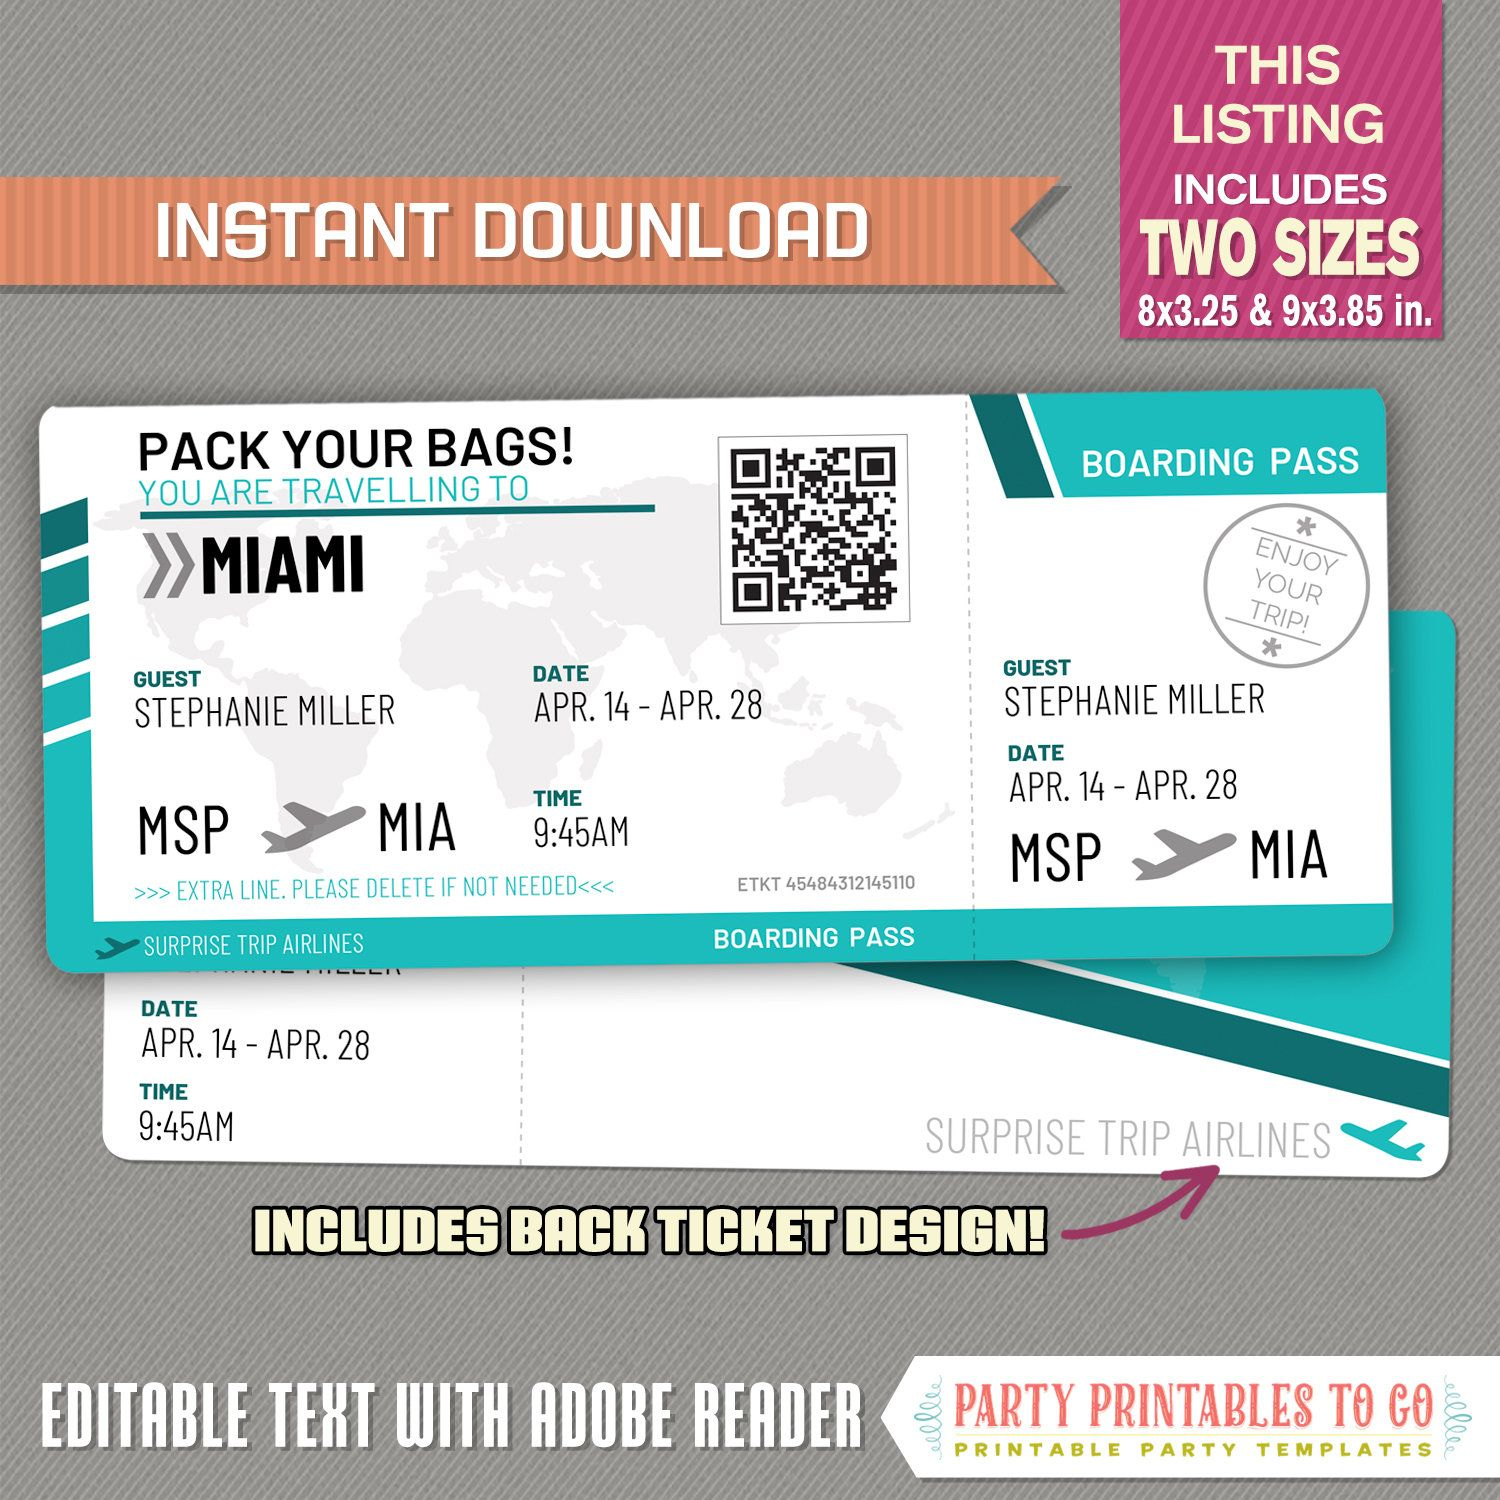 Editable Airplane Boarding Pass Teal Surprise Trip Airline | Etsy in 2020 | Airline  tickets, Boarding pass, Airline